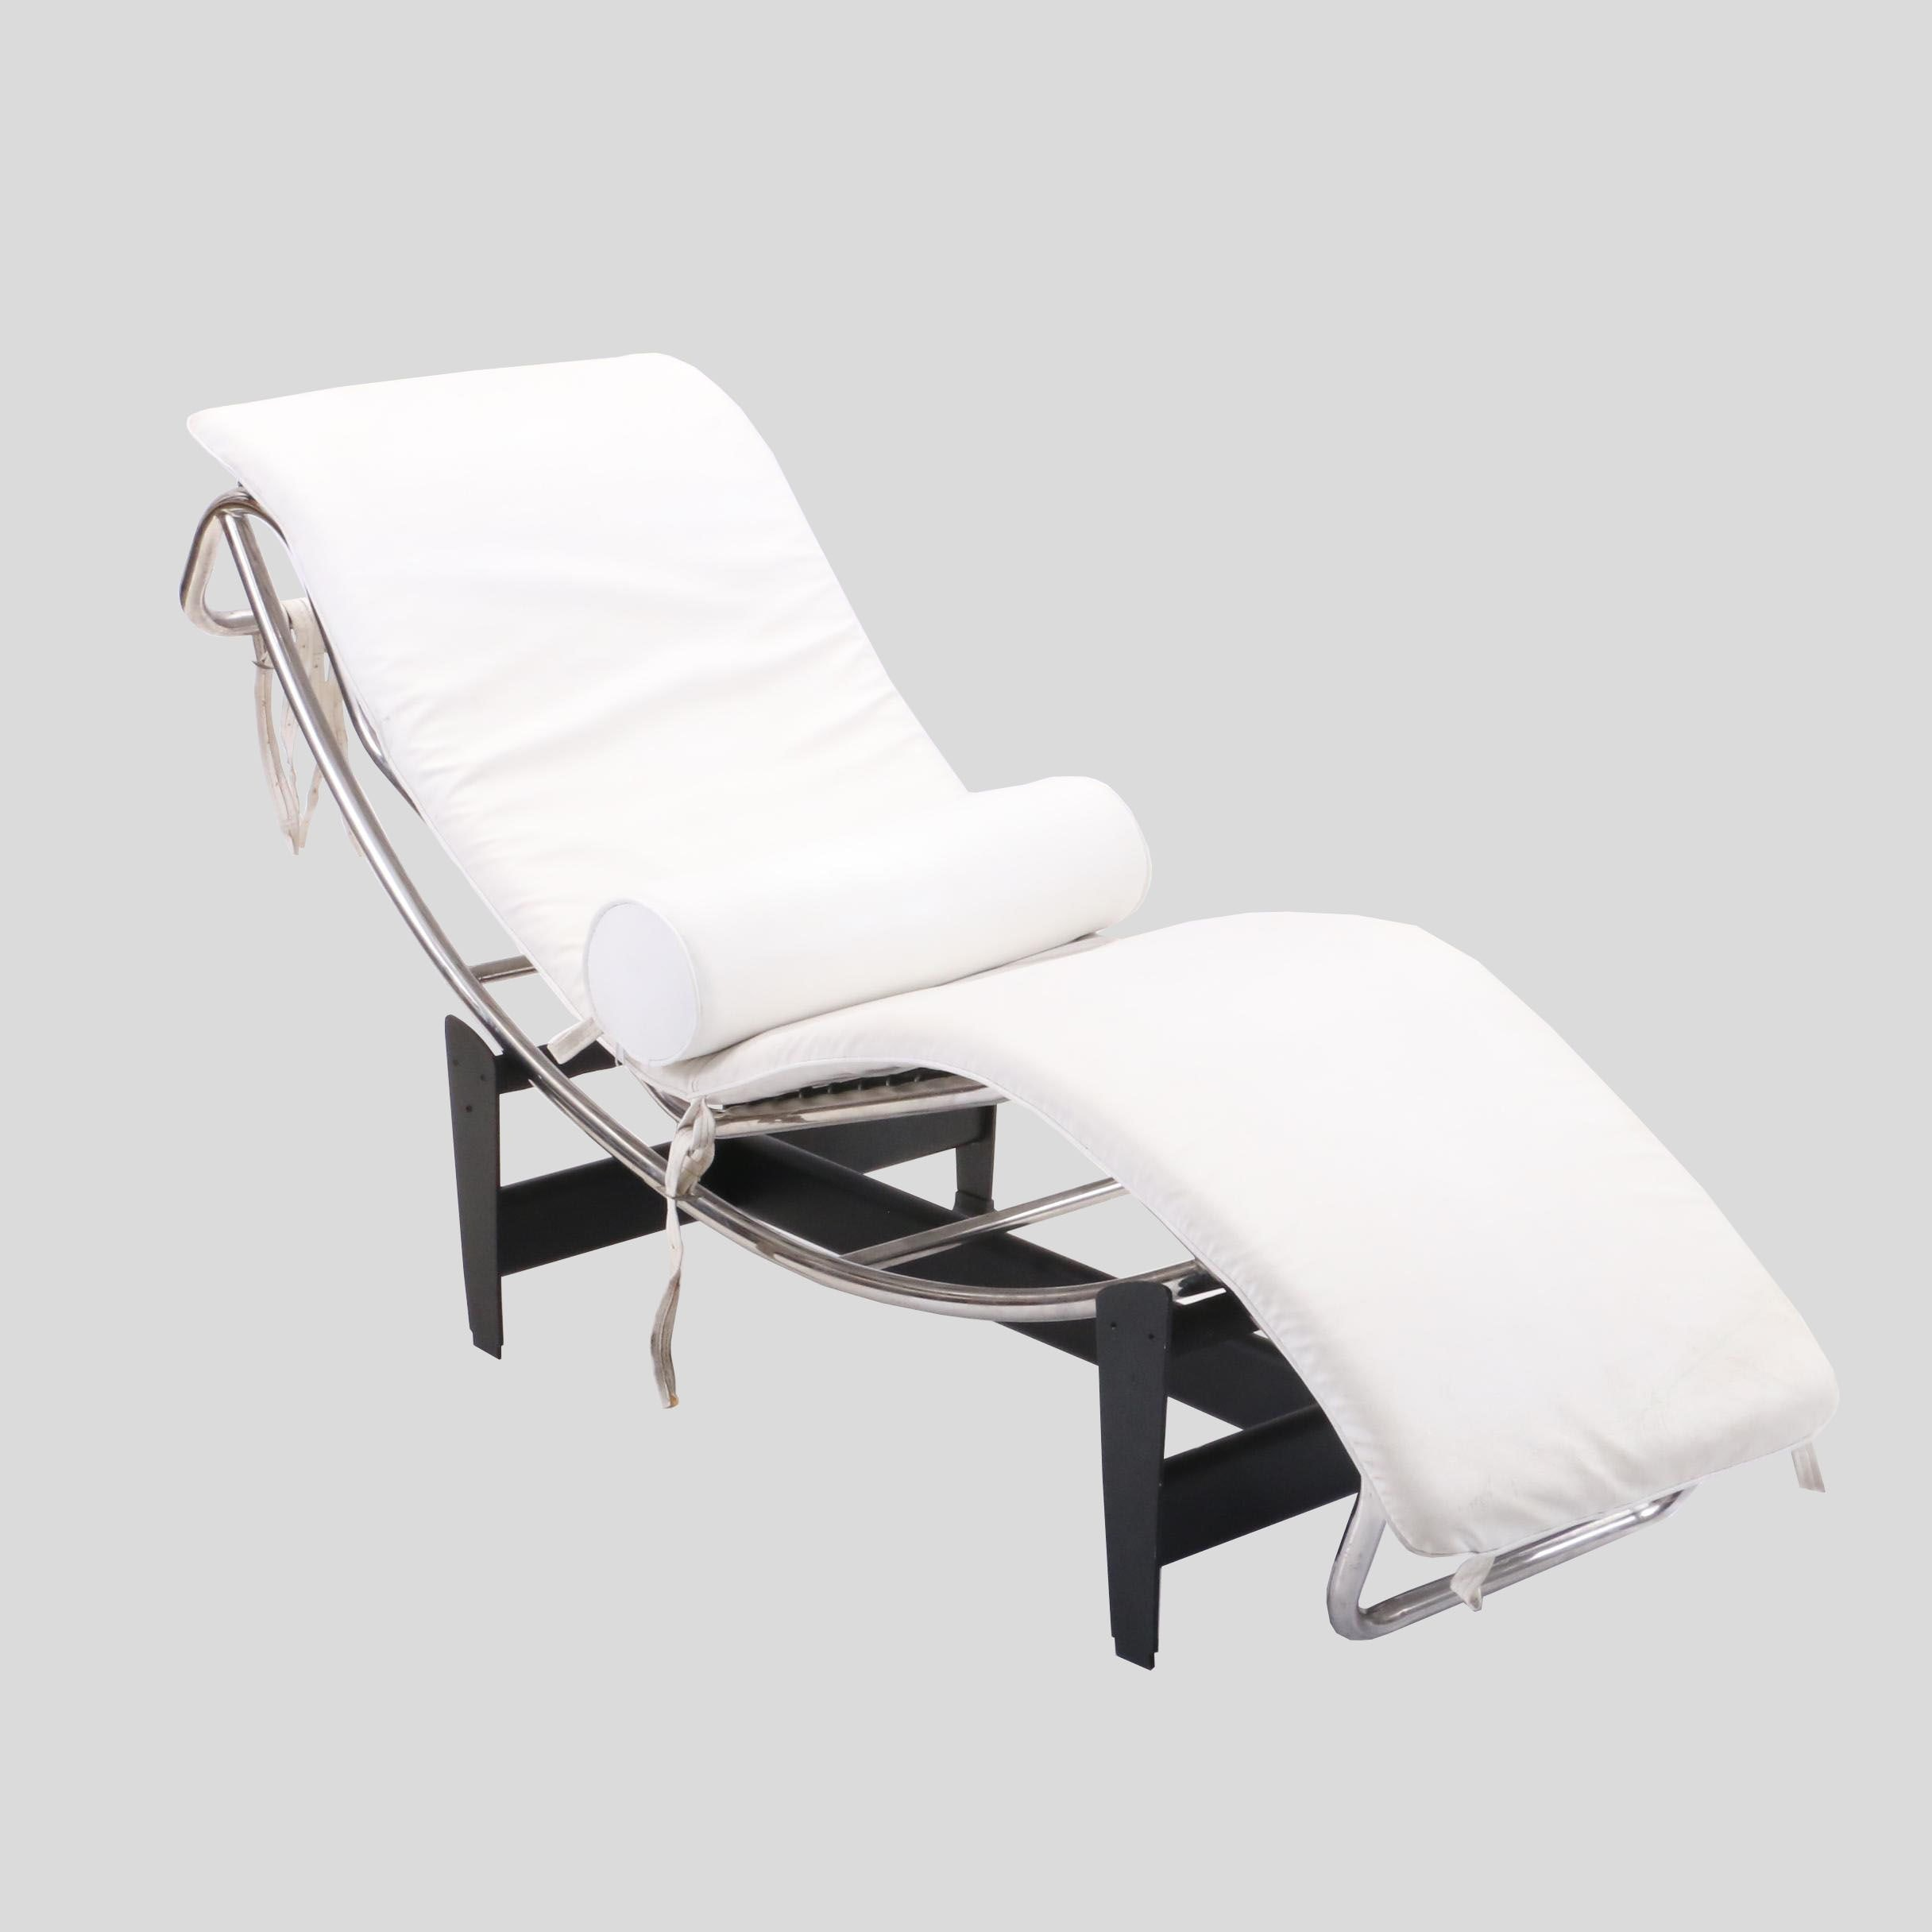 Le Corbusier Style Chaise Lounge Chair, Mid-20th Century